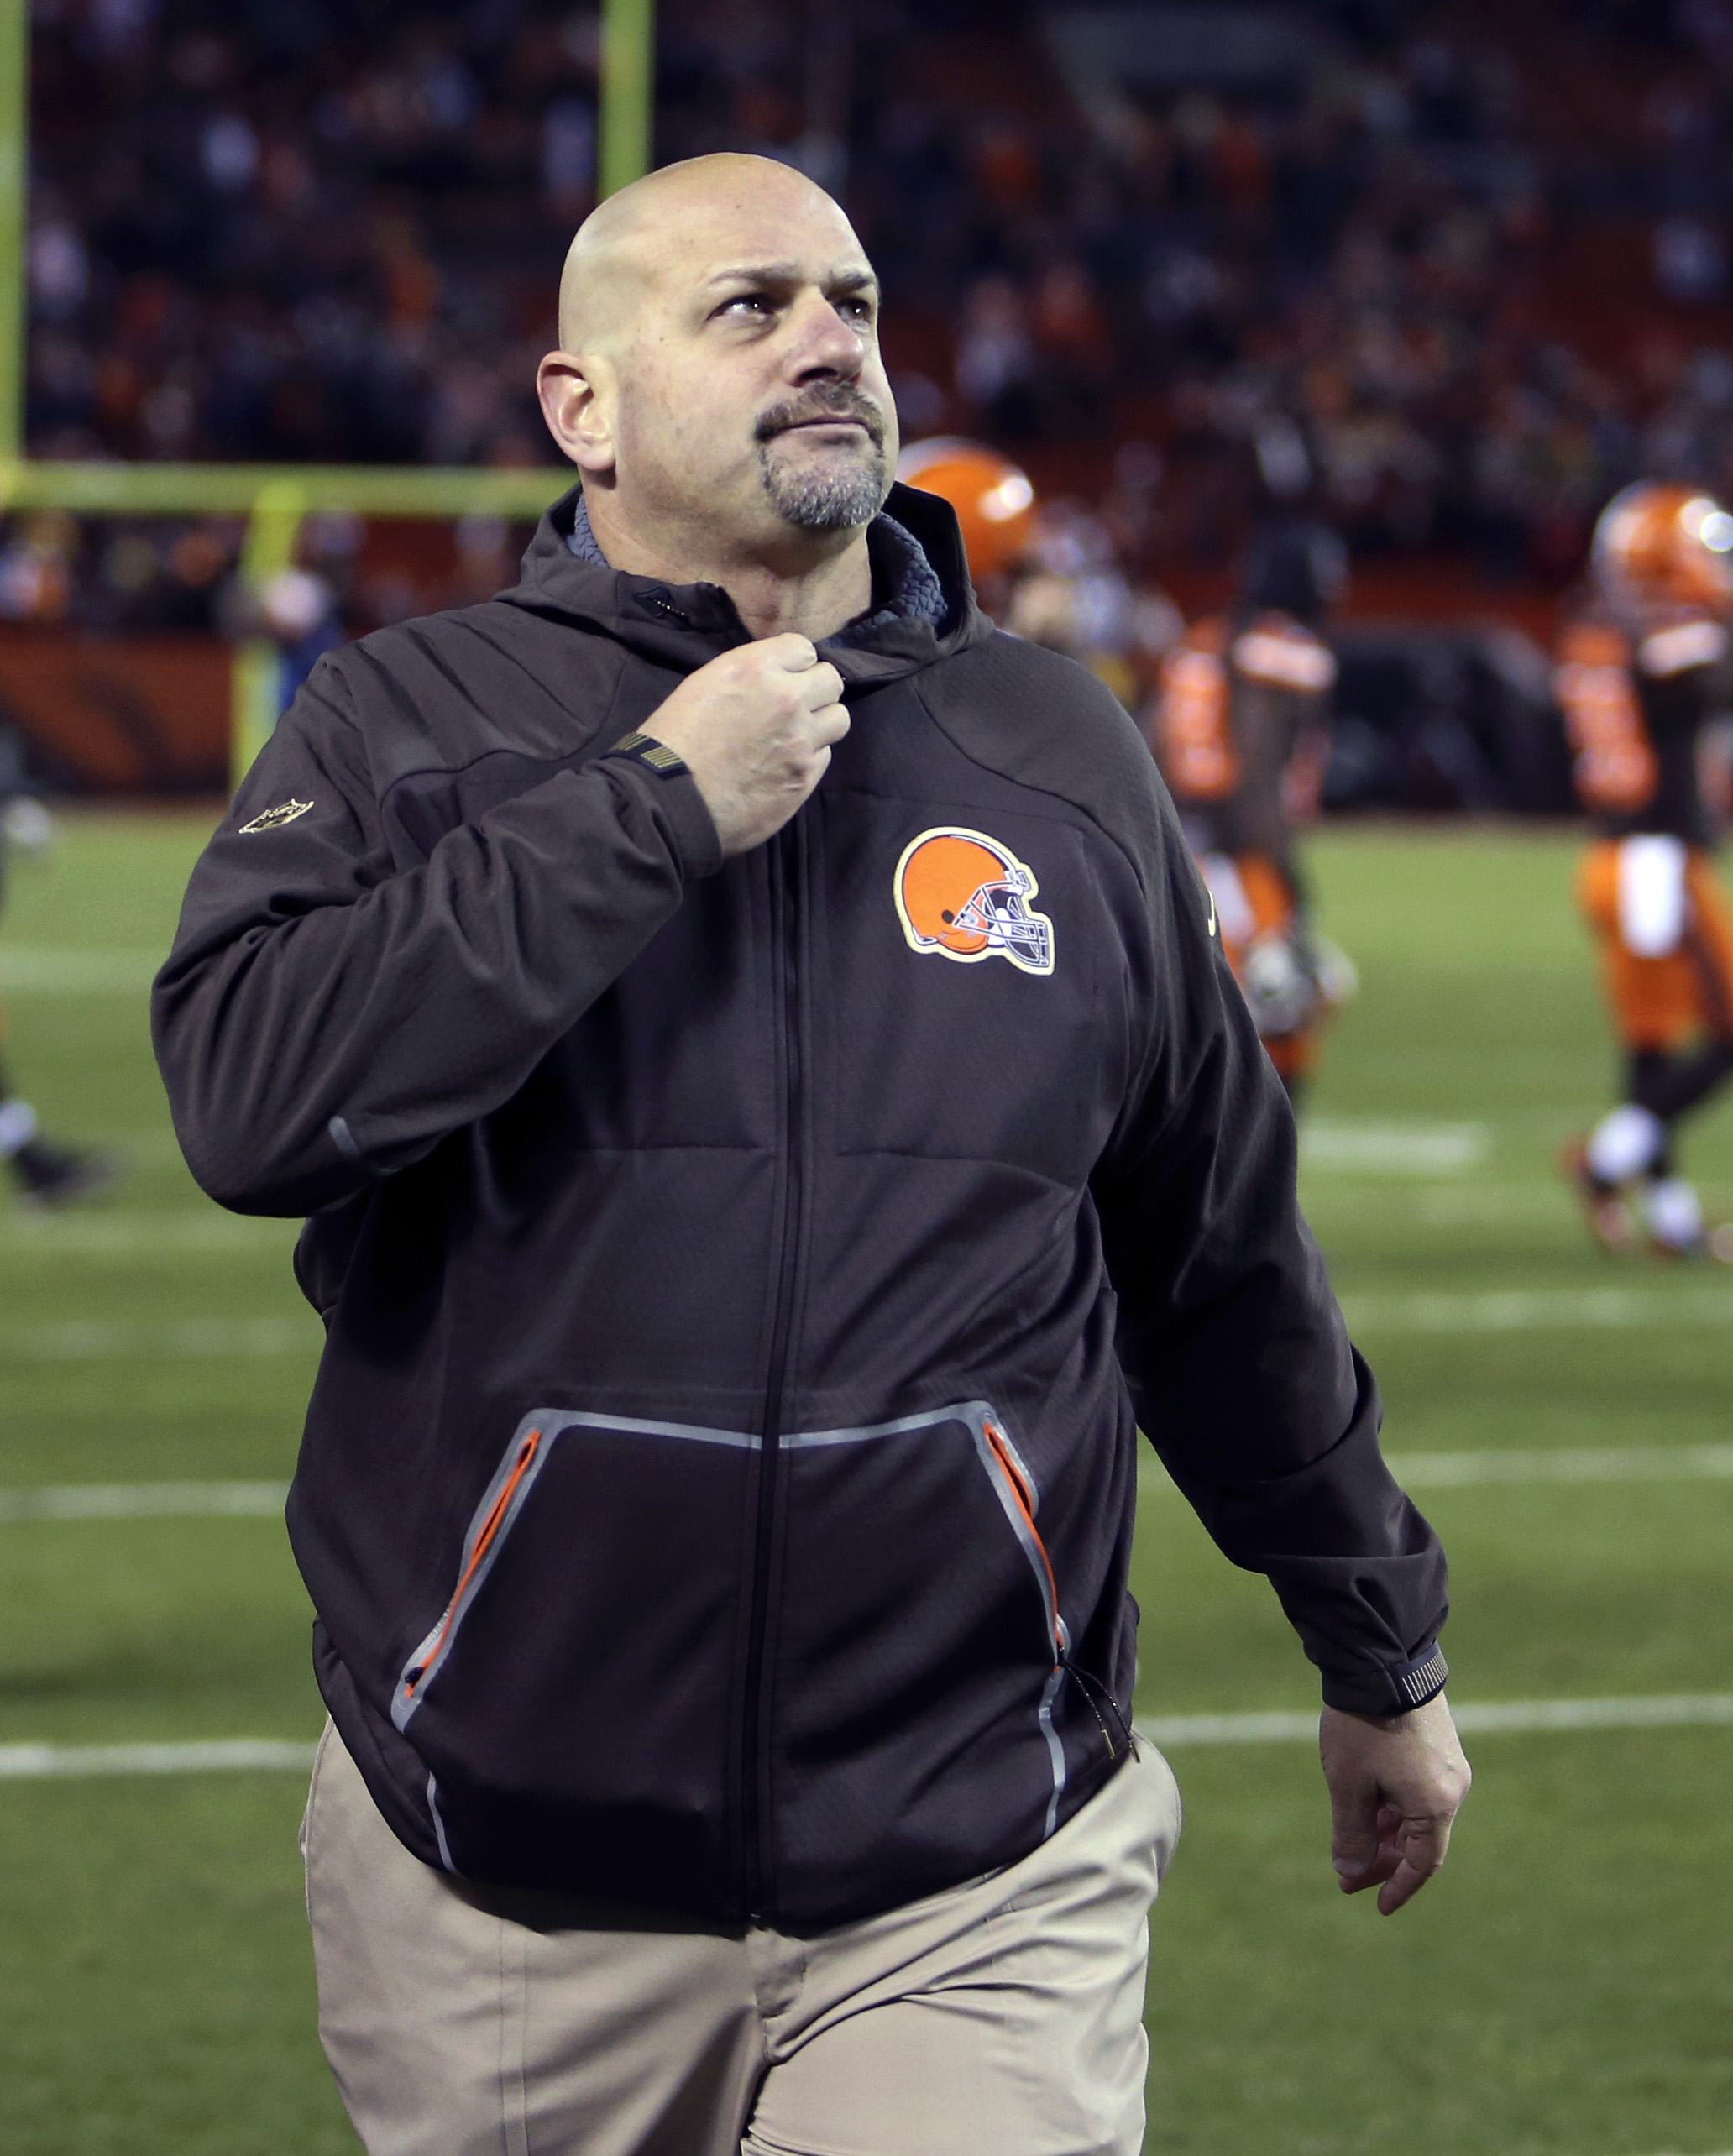 Cleveland Browns head coach Mike Pettine walks off the field after the Baltimore Ravens defeated the Browns 33-27 in an NFL football game, Monday, Nov. 30, 2015, in Cleveland. (AP Photo/Ron Schwane)